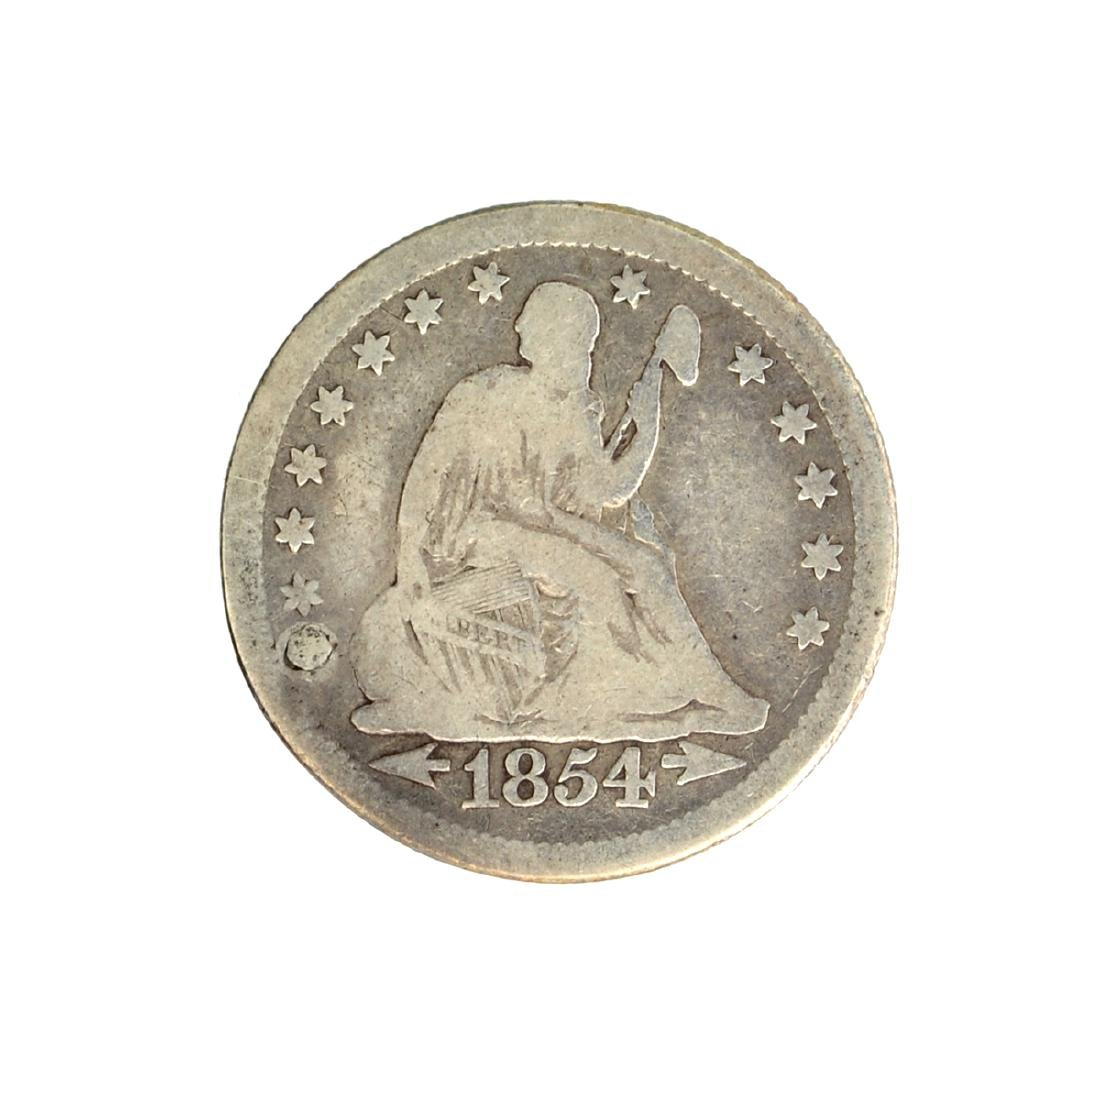 1854 Arrows At Date Liberty Seated Quarter Dollar Coin